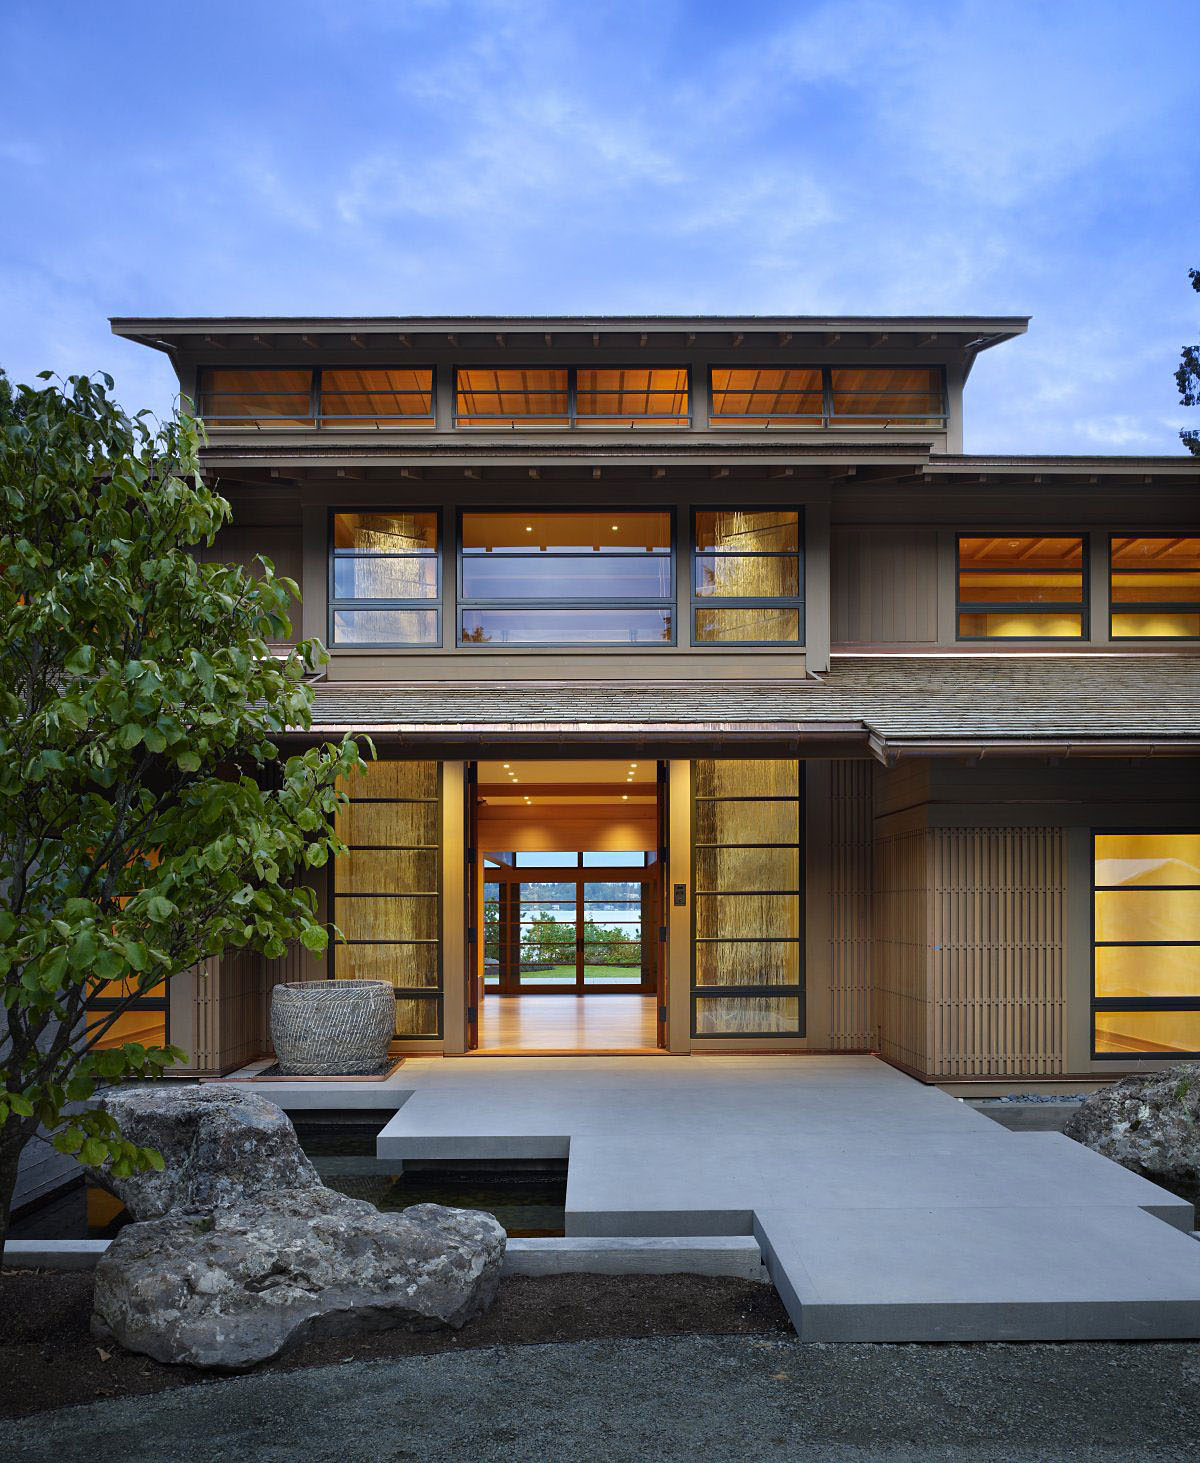 Contemporary house in seattle with japanese influence idesignarch interior design - Model home designer inspiration ...